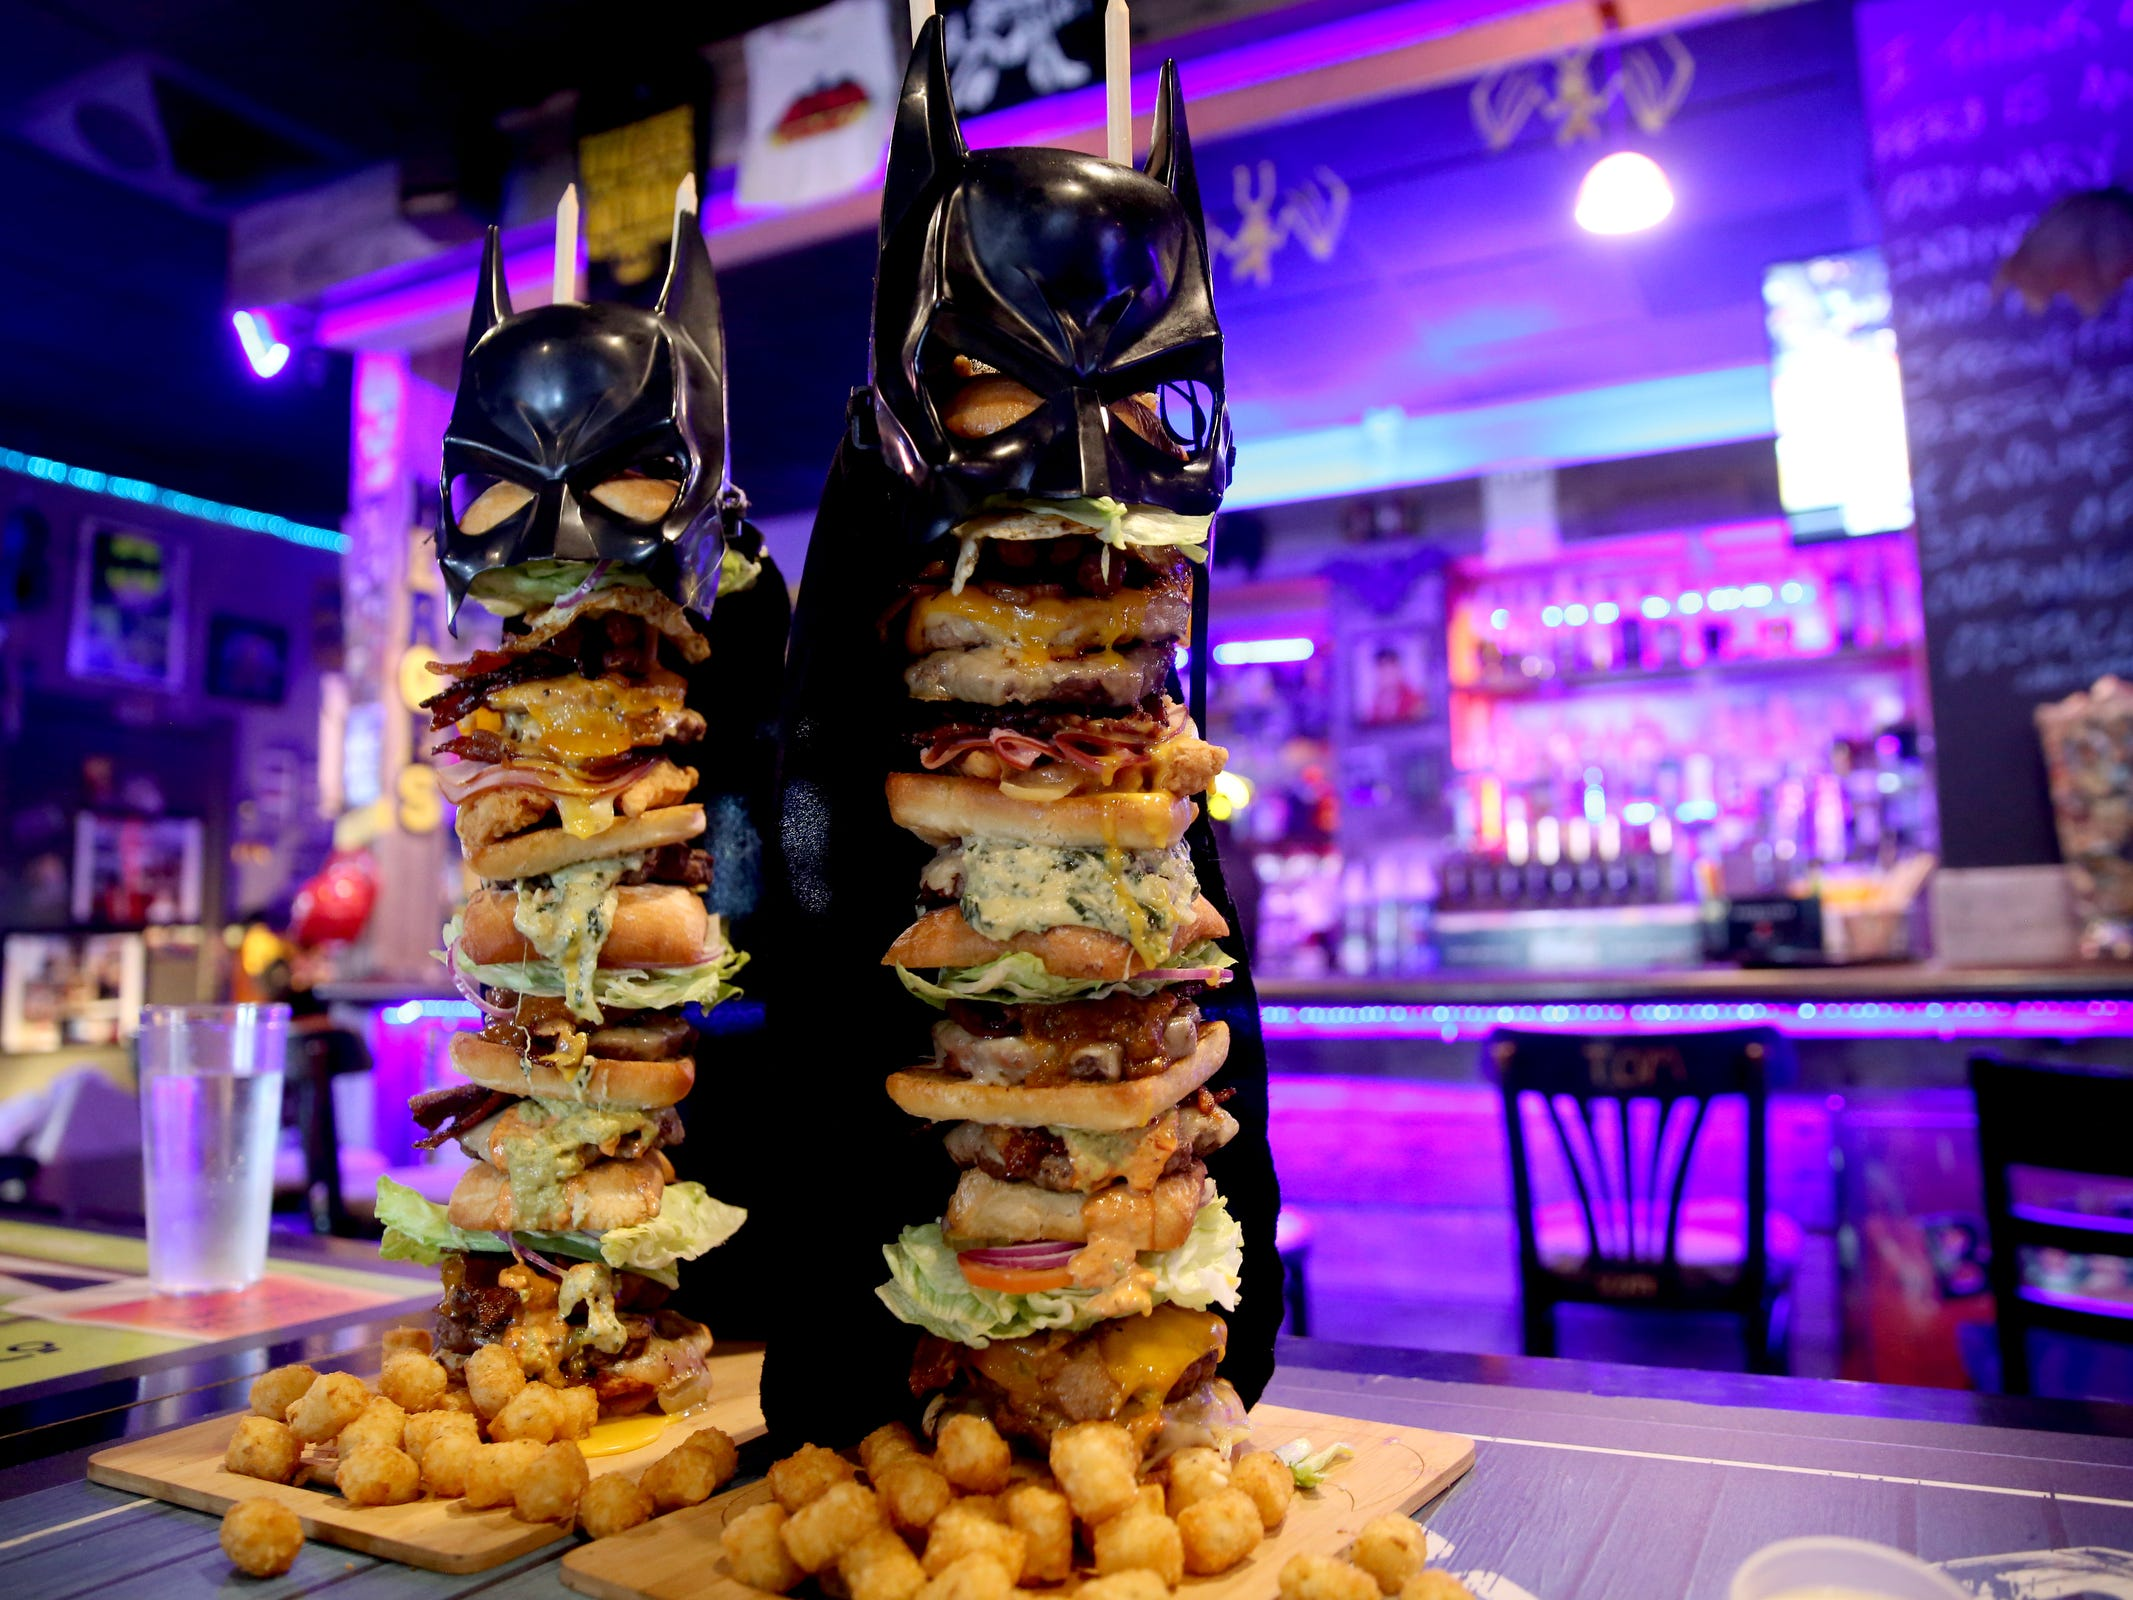 "The stacks are ready for a Statesman Journal eating challenge against professional competitive eater ""Max Carnage"" to finish the Dark Knight Burger, consisting of six top-selling burgers, at Heroes Tap House in Salem on March 22, 2019. The Statesman Journal crew finished the stack in 35 minutes."